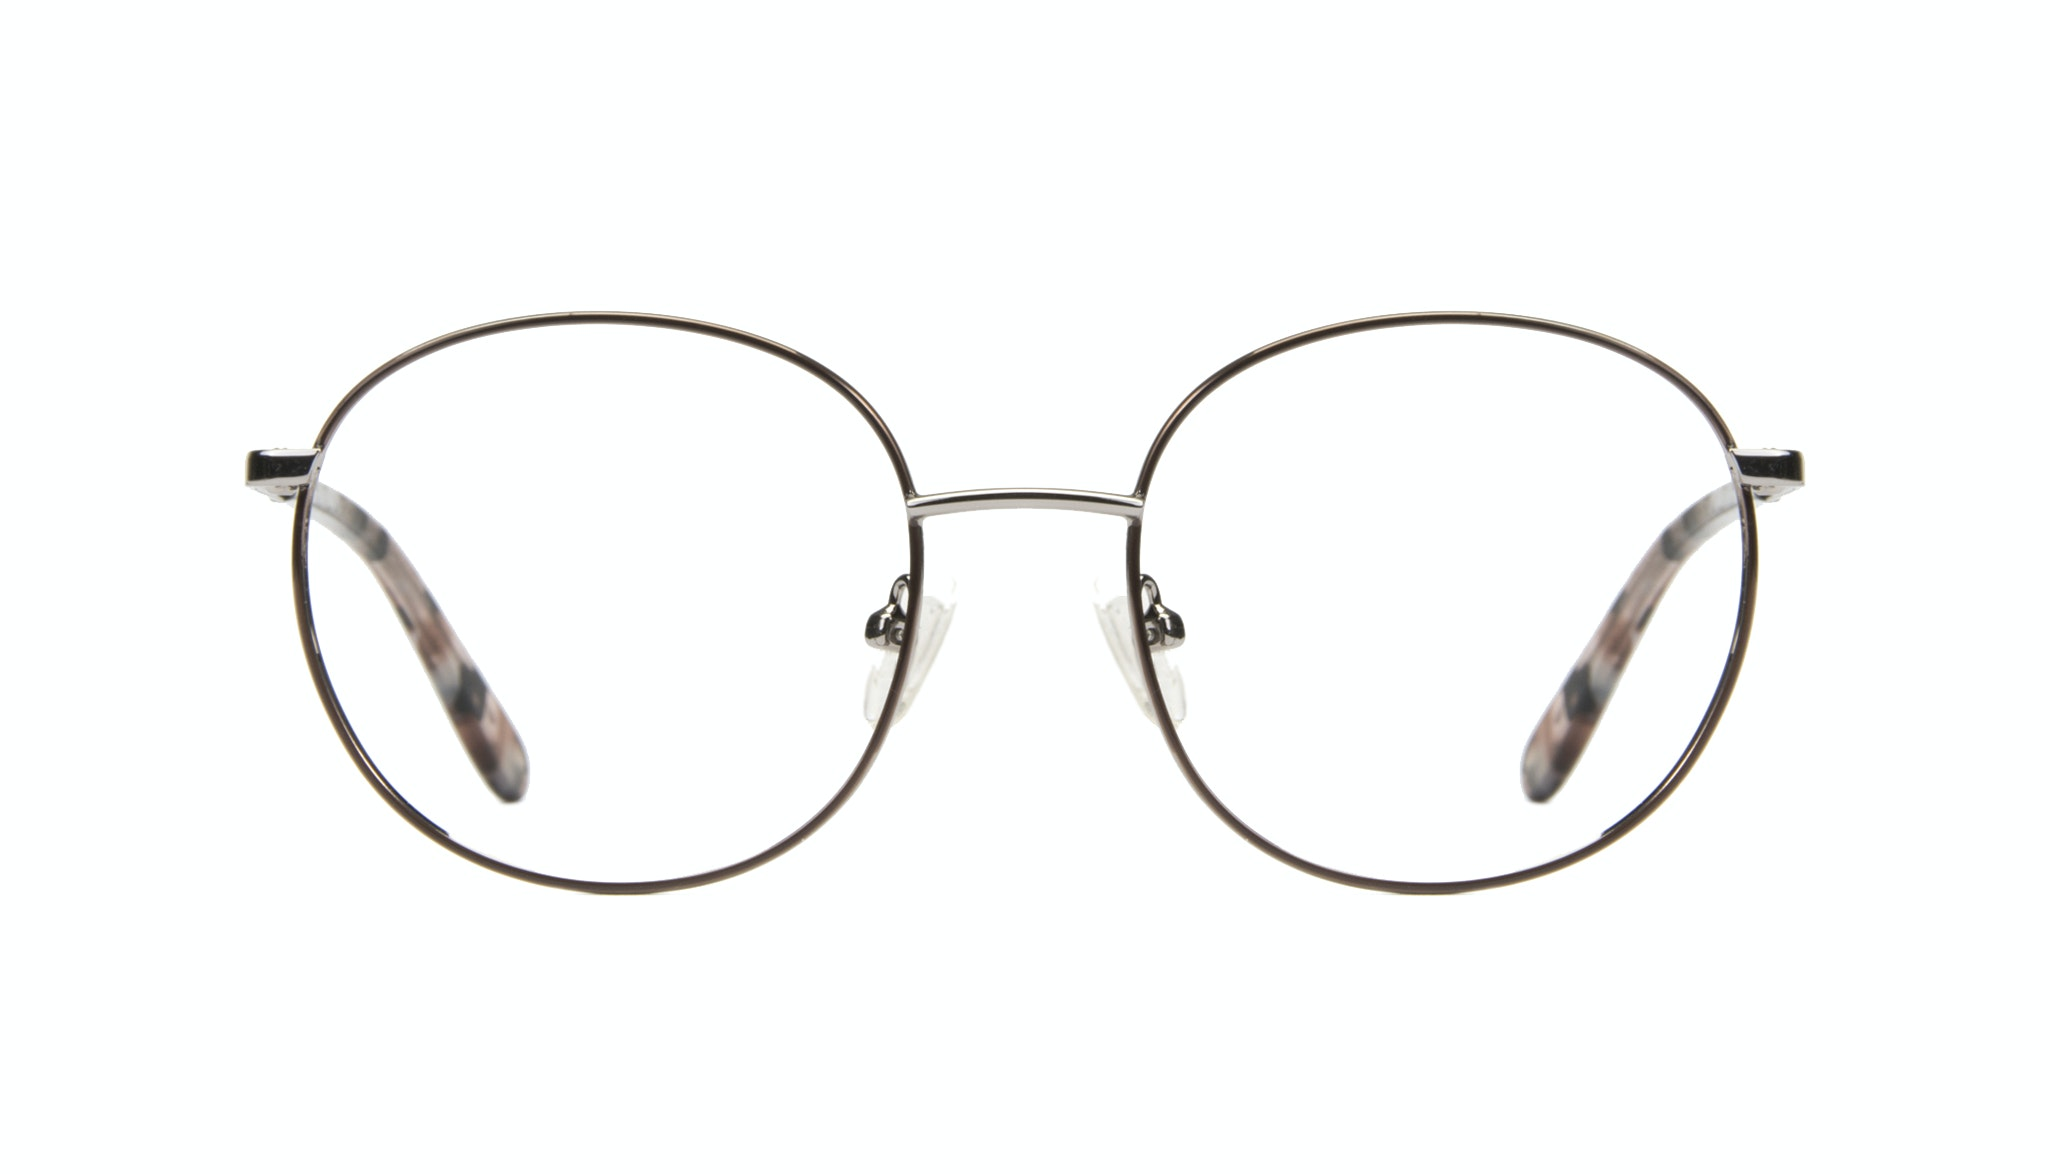 Affordable Fashion Glasses Round Eyeglasses Women Joy Rose Metal